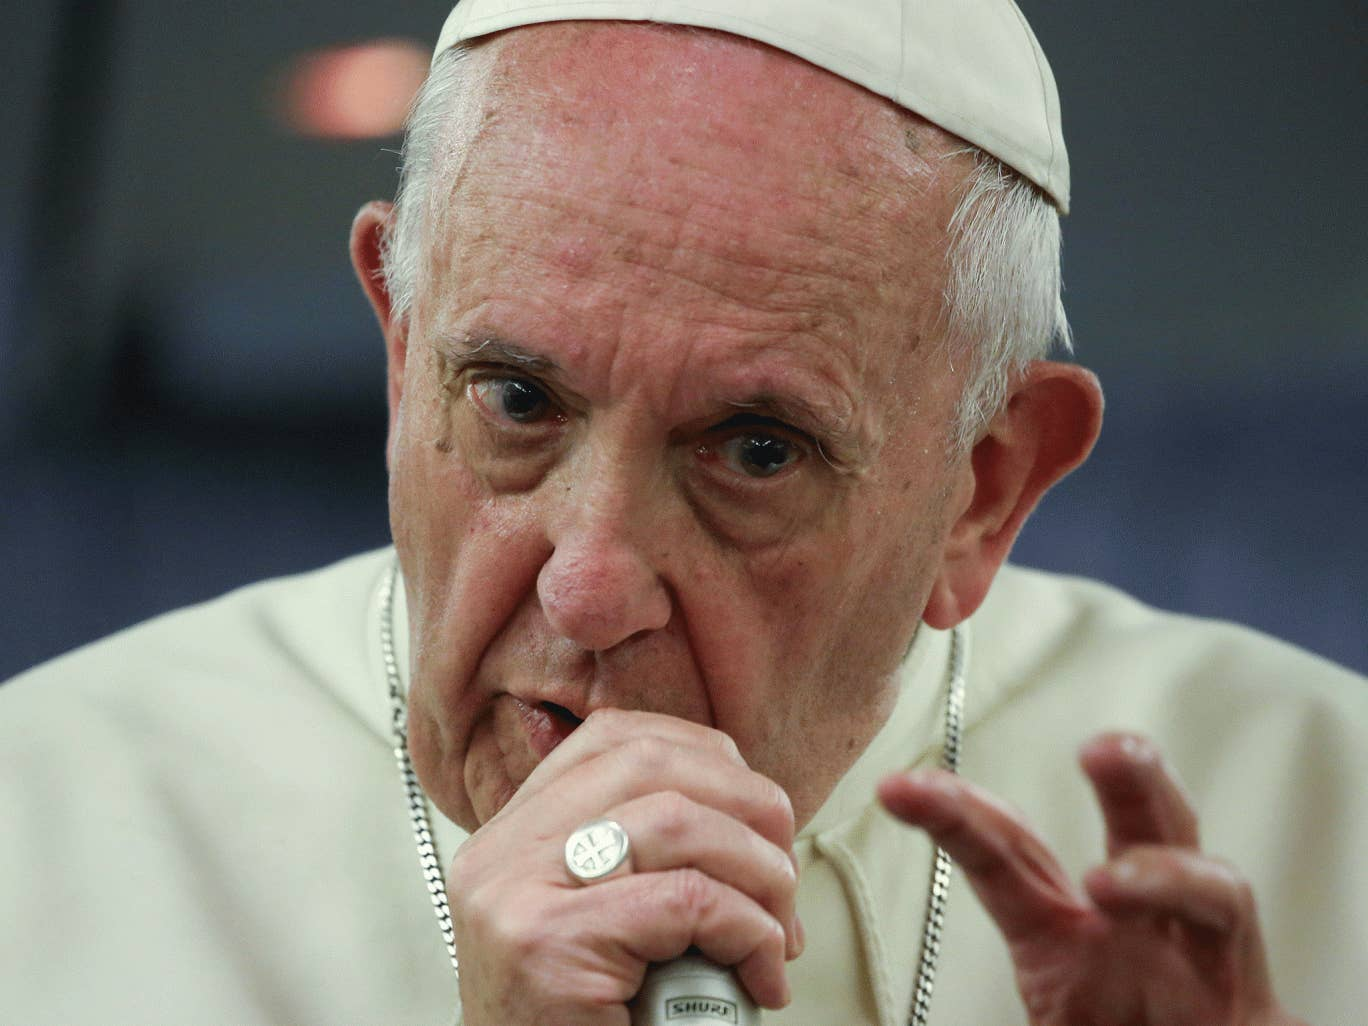 Vatican position on homosexuality